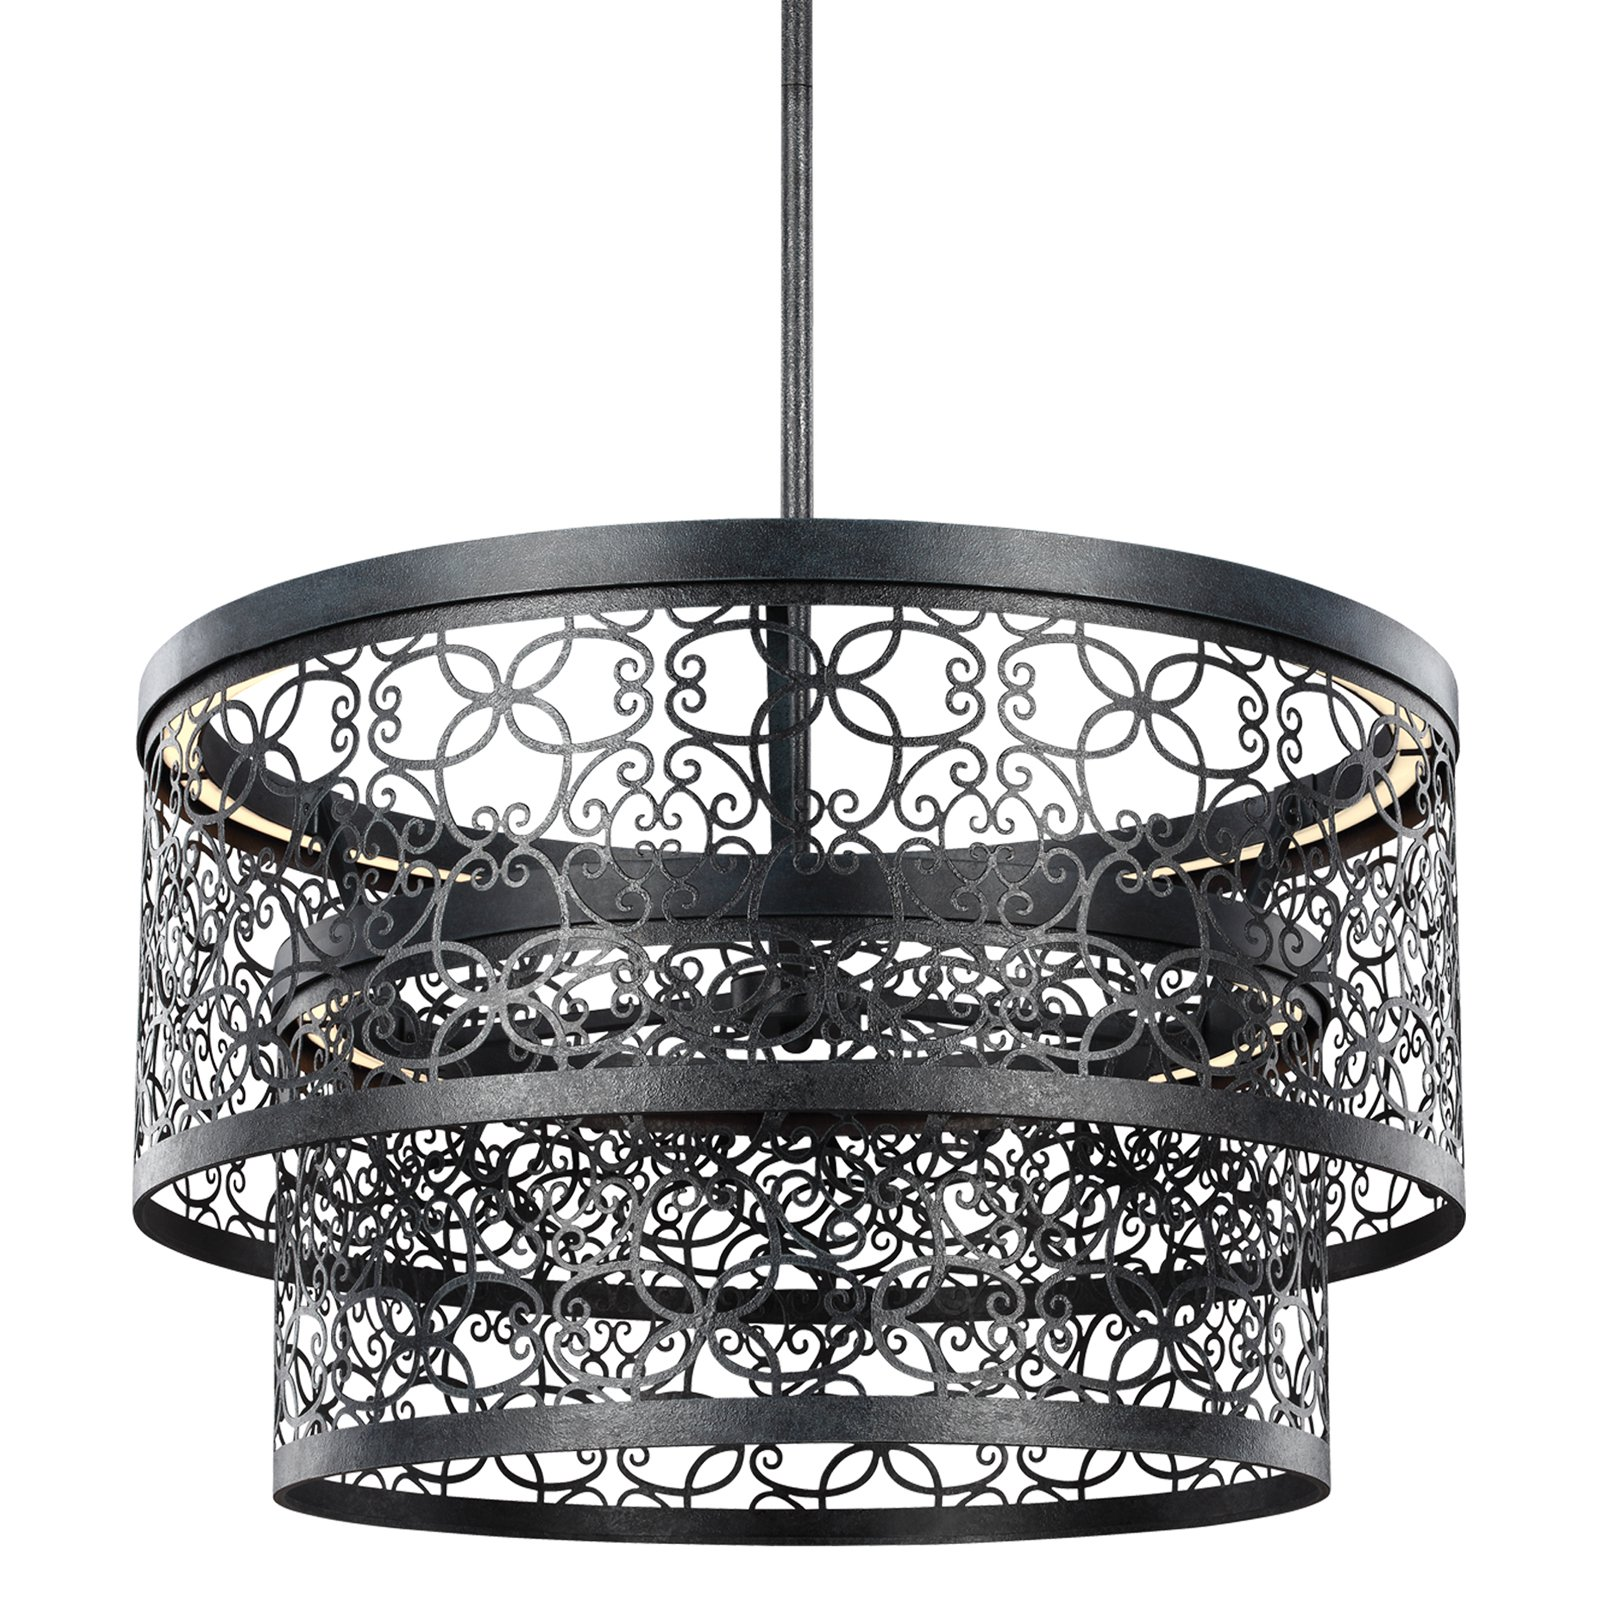 Feiss Arramore F3098 2DWZ-LED Outdoor Pendant Light by Feiss